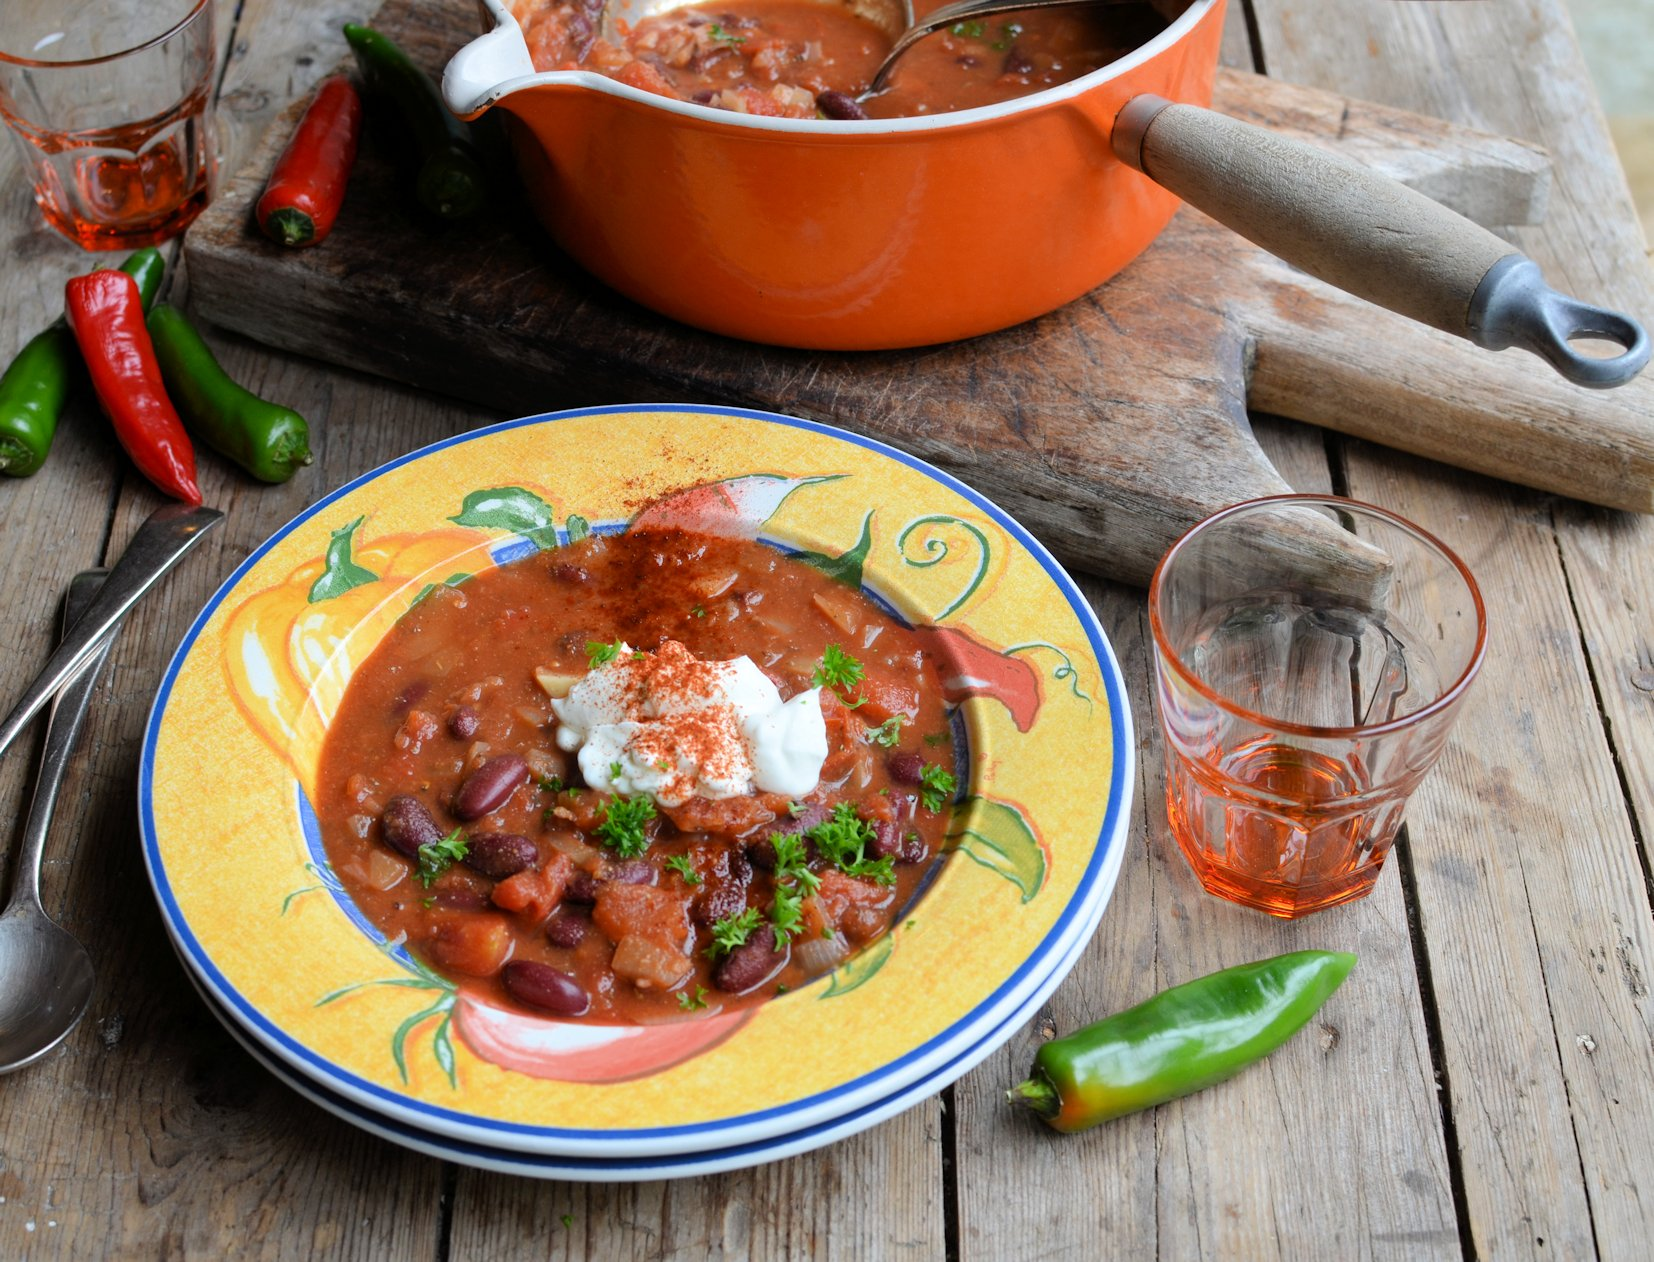 Weekly Meal Plan: 5:2 Recipes and Smoky Mexican Bean Soup (170 Calories a Bowl)